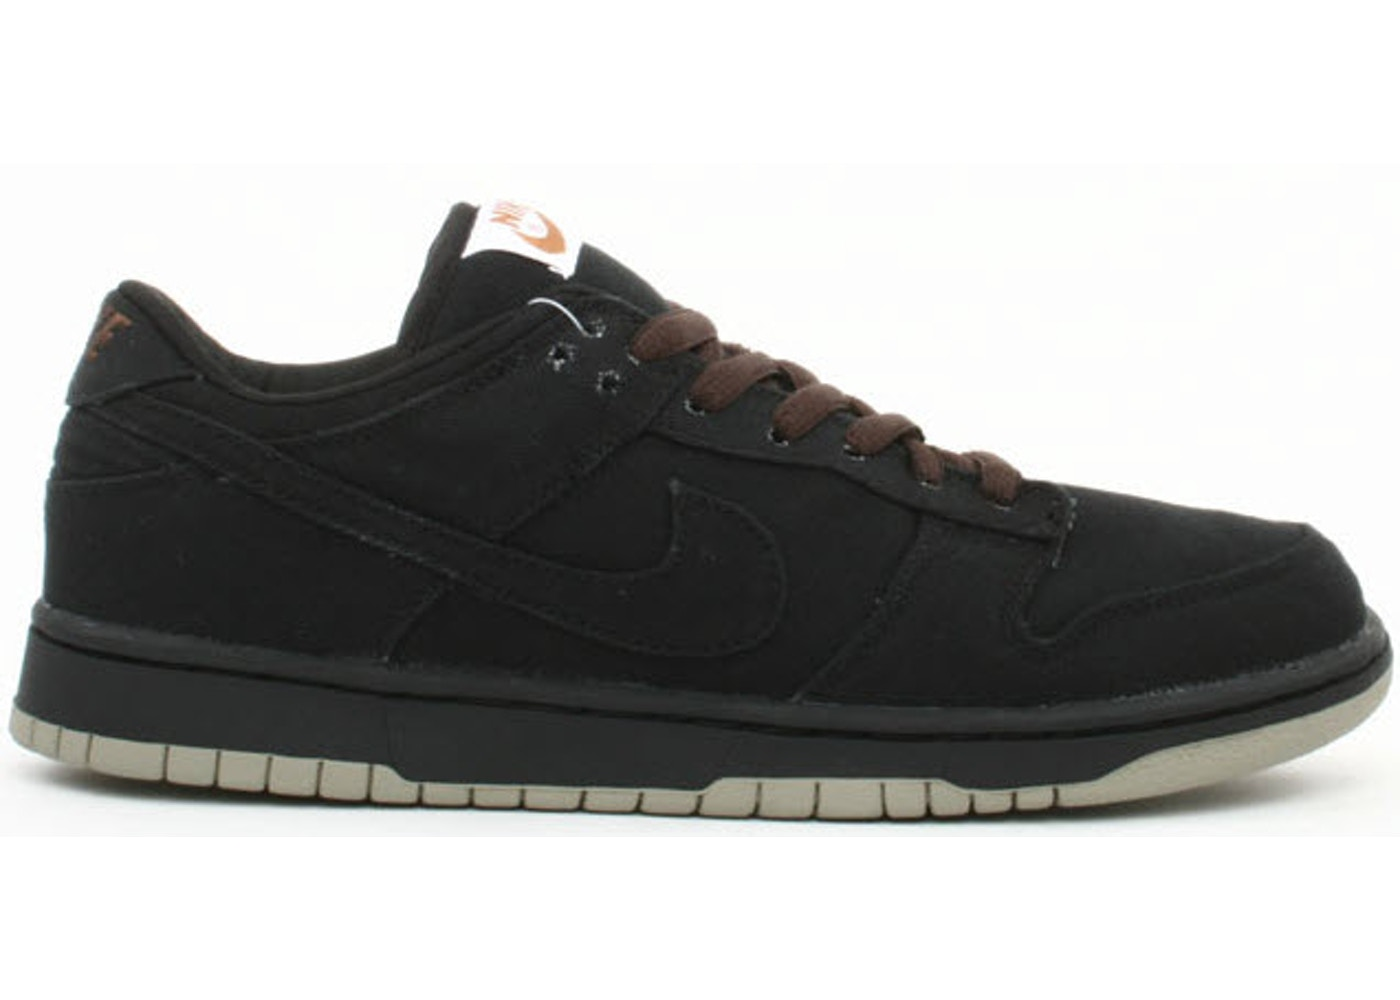 newest 9d299 3c250 Nike Dunk SB Low Carhartt